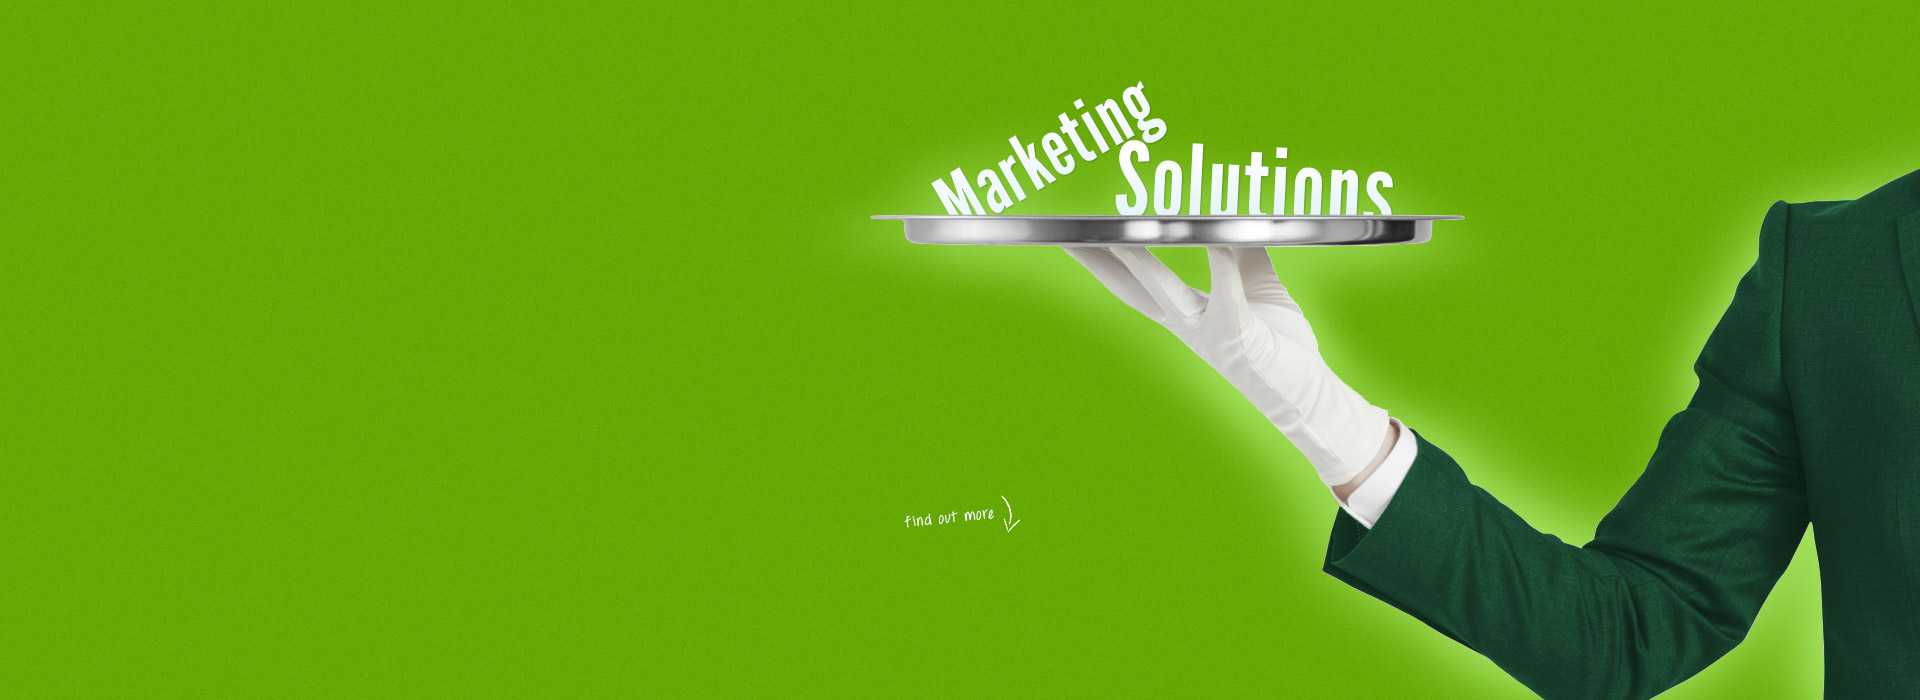 Marketing and Printing Sydney